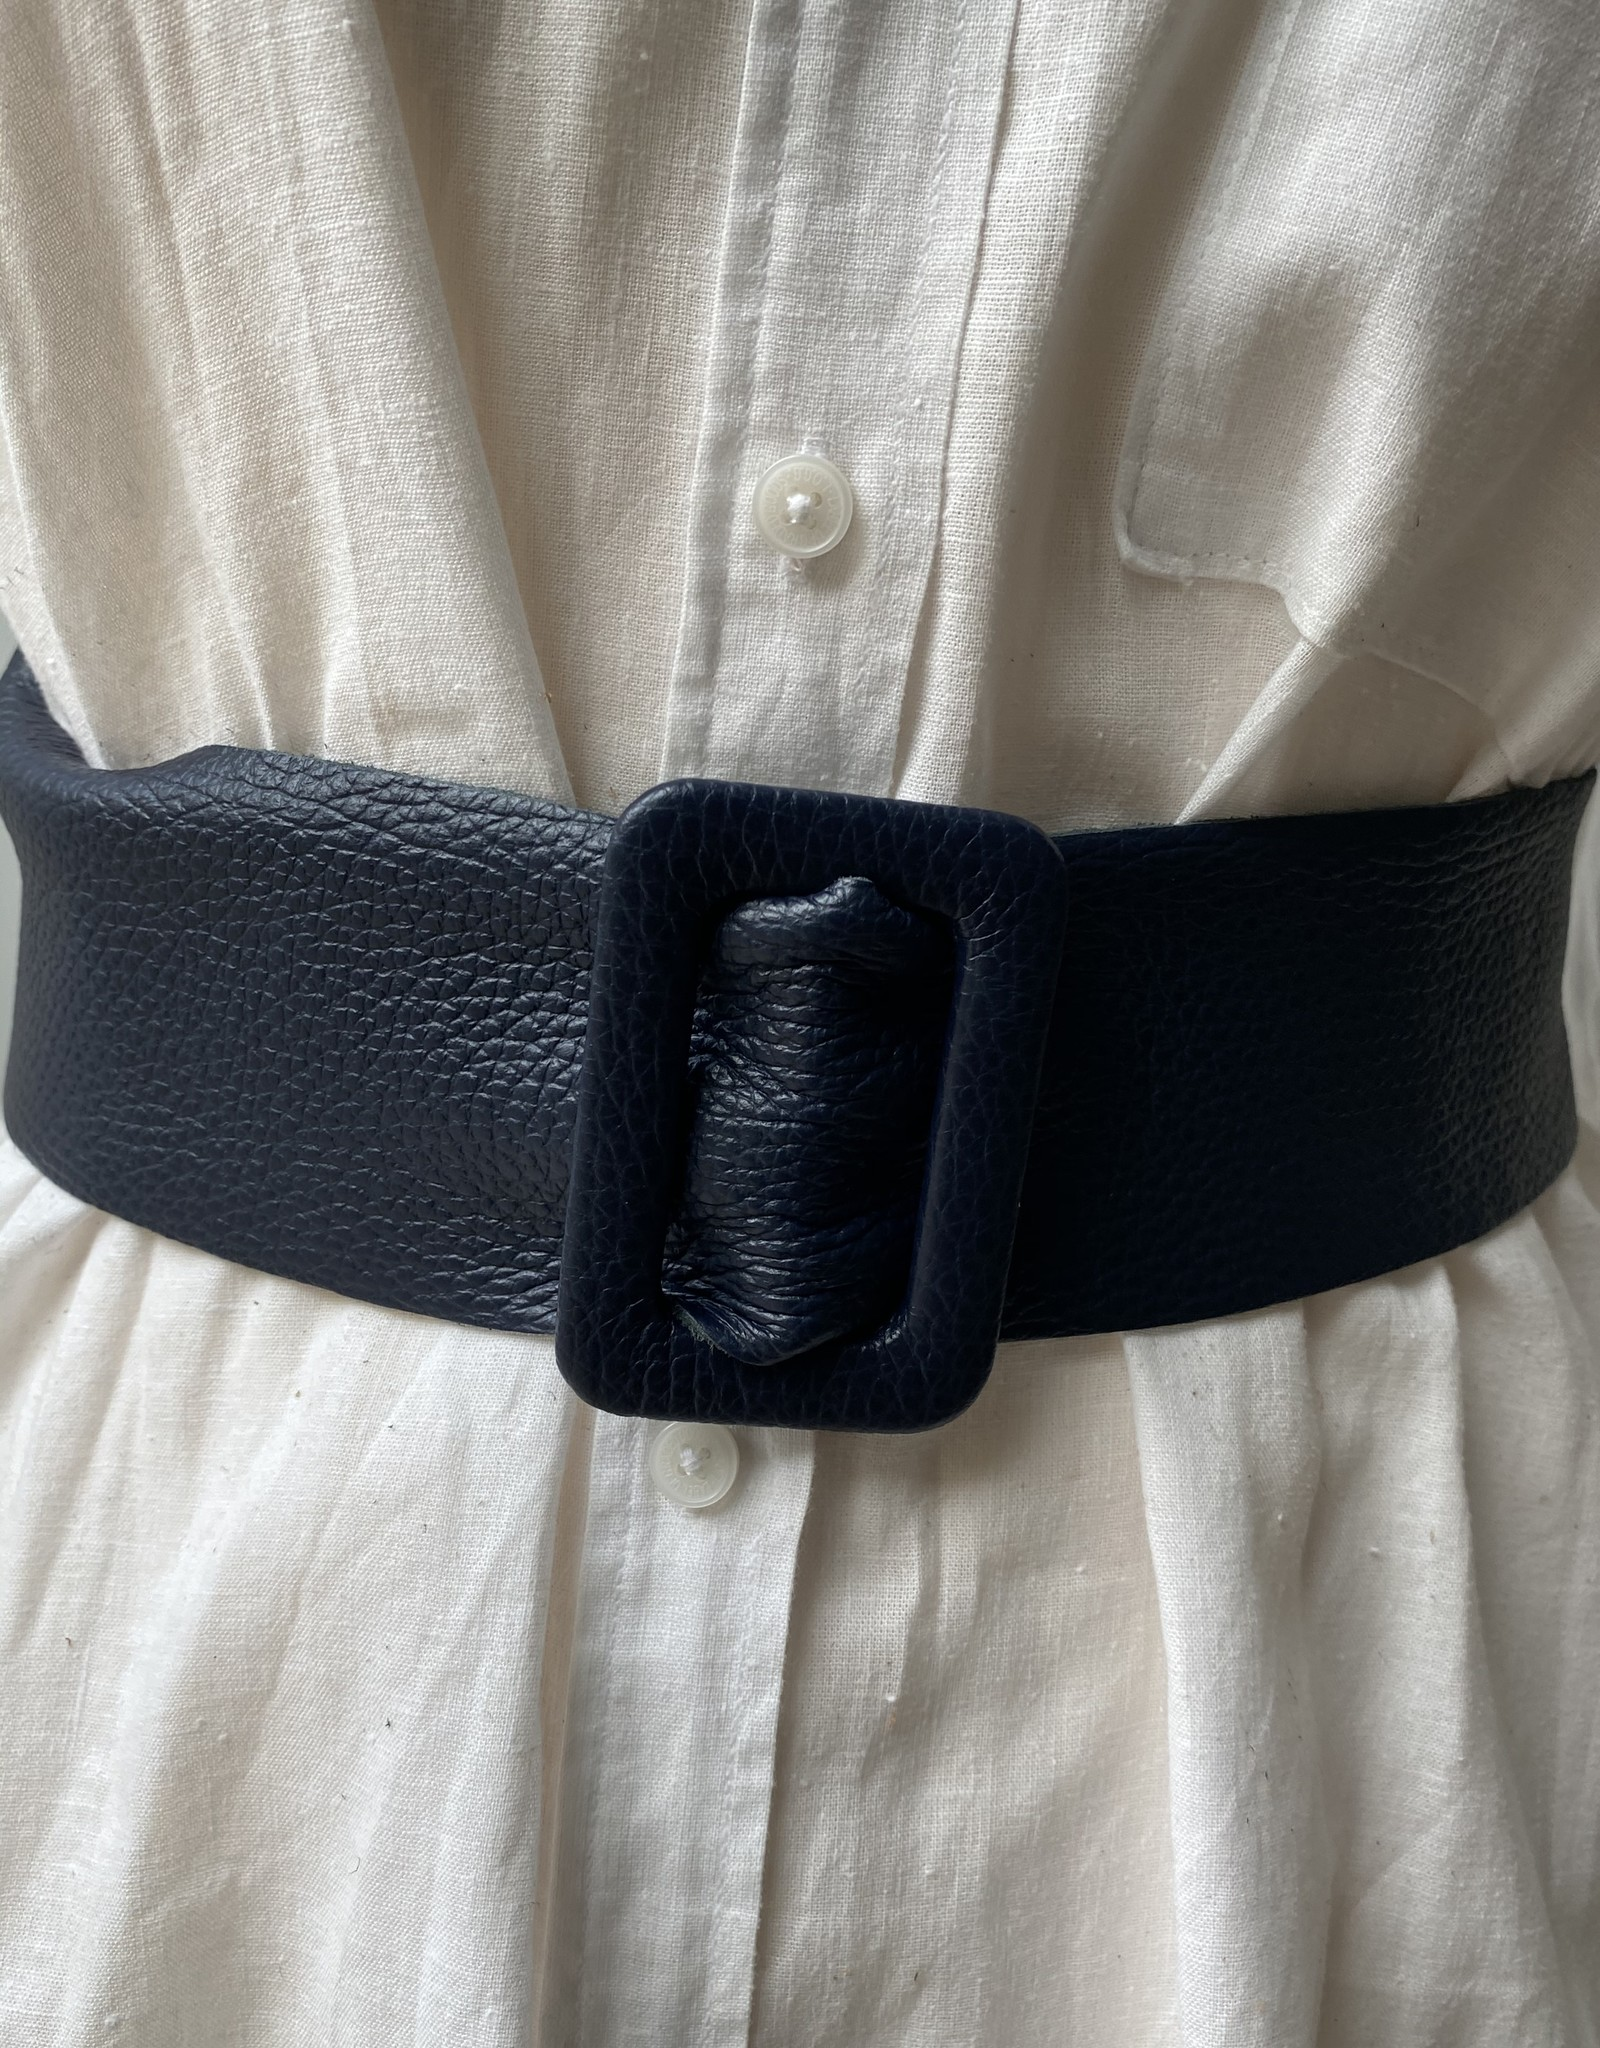 Giuliano Leather wide belt with triangle pull-trough buckle